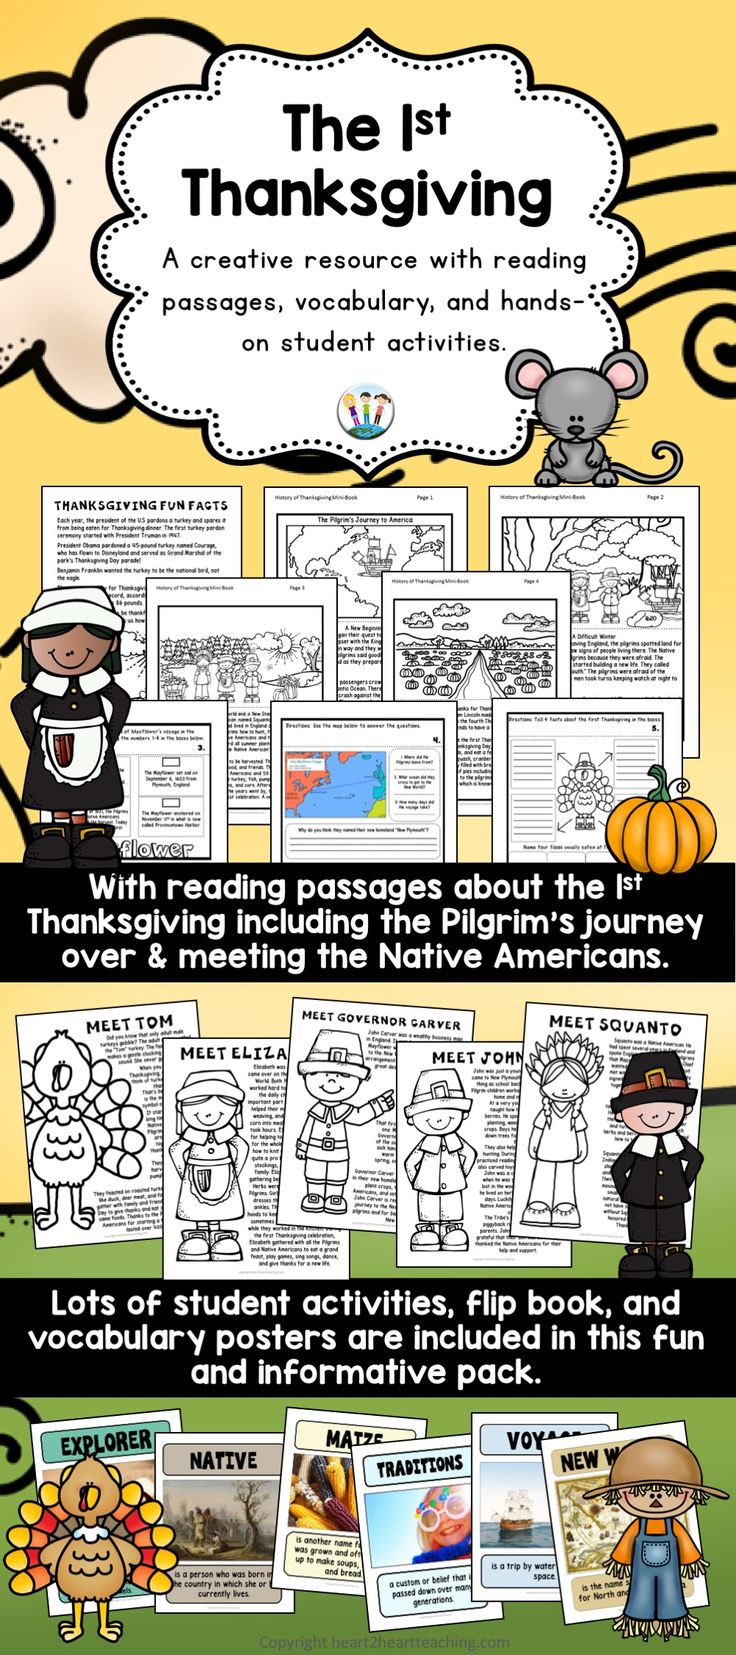 This unit includes many interactive activities  for students with reading passages about the Pilgrim's Voyage, the First Thanksgiving, Thanksgiving Traditions, and fun facts. Students will meet Tom Turkey, Squanto, a pilgrim boy and girl, and Governor Carver, the first governor of New Plymouth. This unit includes a flip book too.